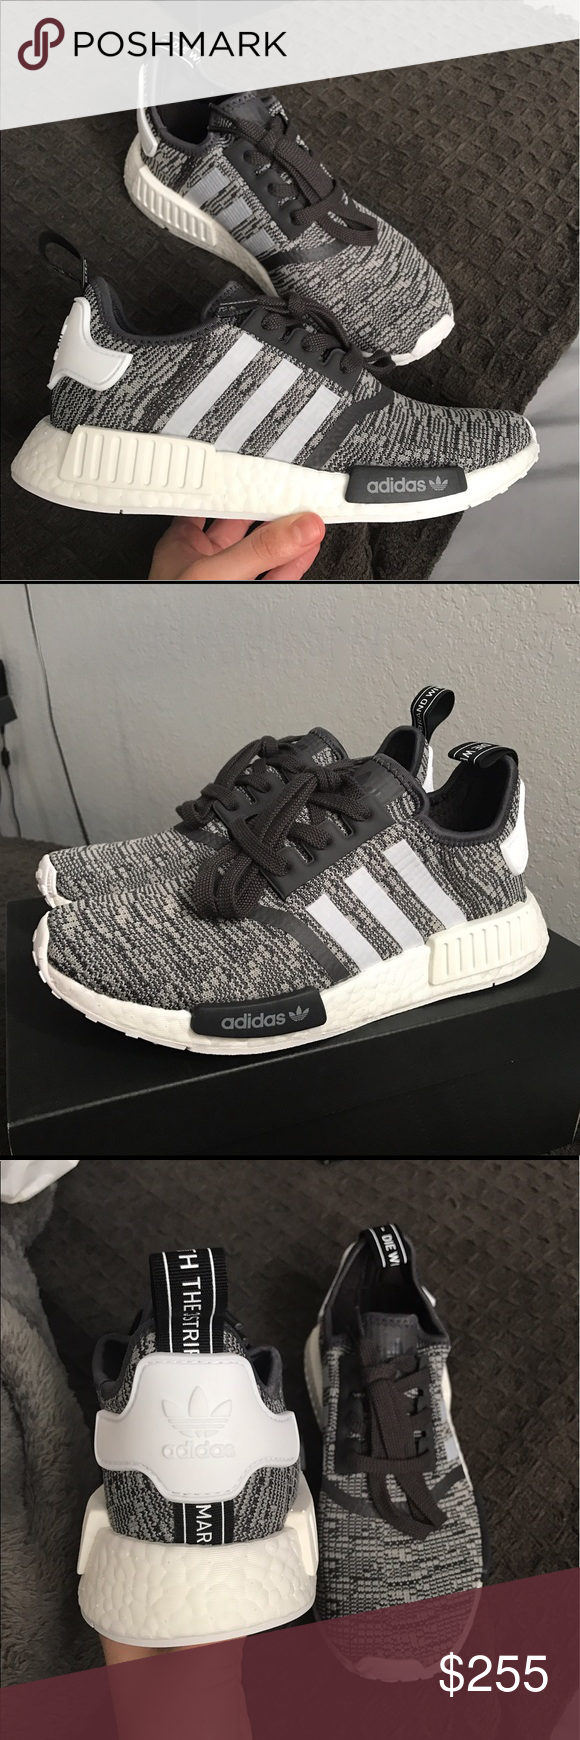 a1af79fa4363e Adidas NMD r1 midnight grey  white Brand new comes with original box Adidas  Shoes Sneakers